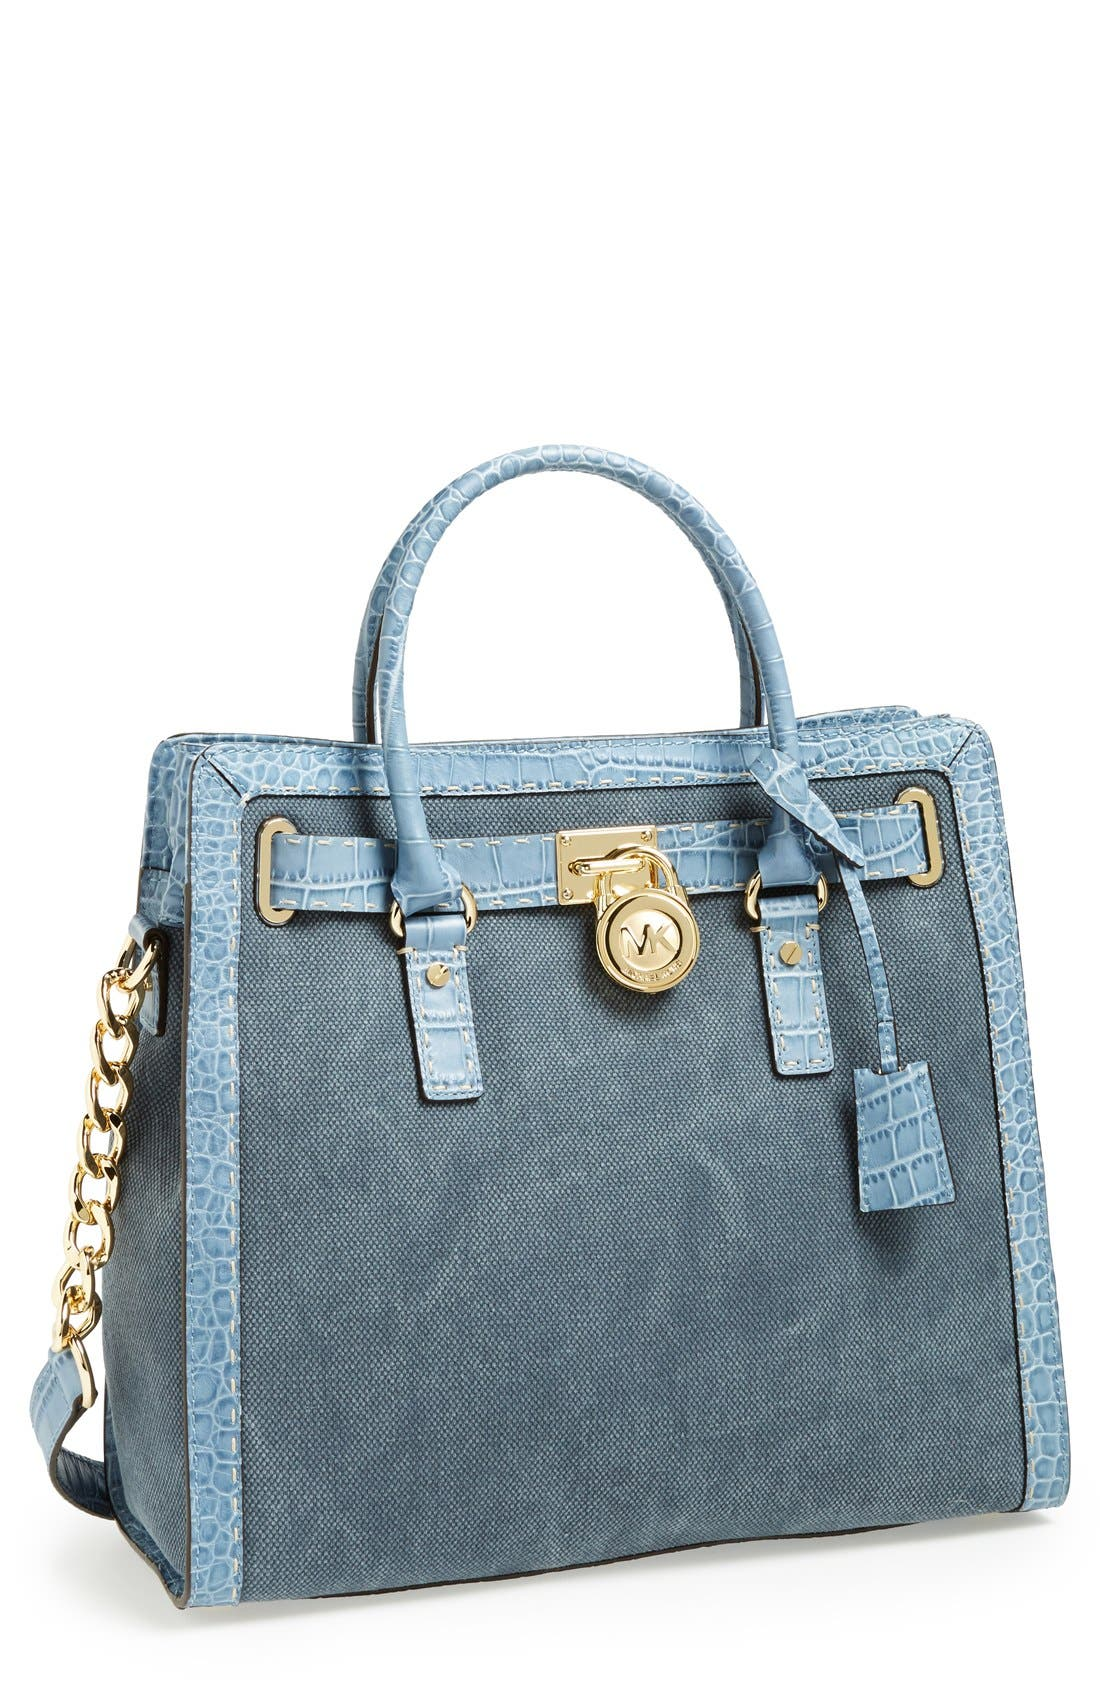 Alternate Image 1 Selected - MICHAEL Michael Kors 'Large' North/South Tote